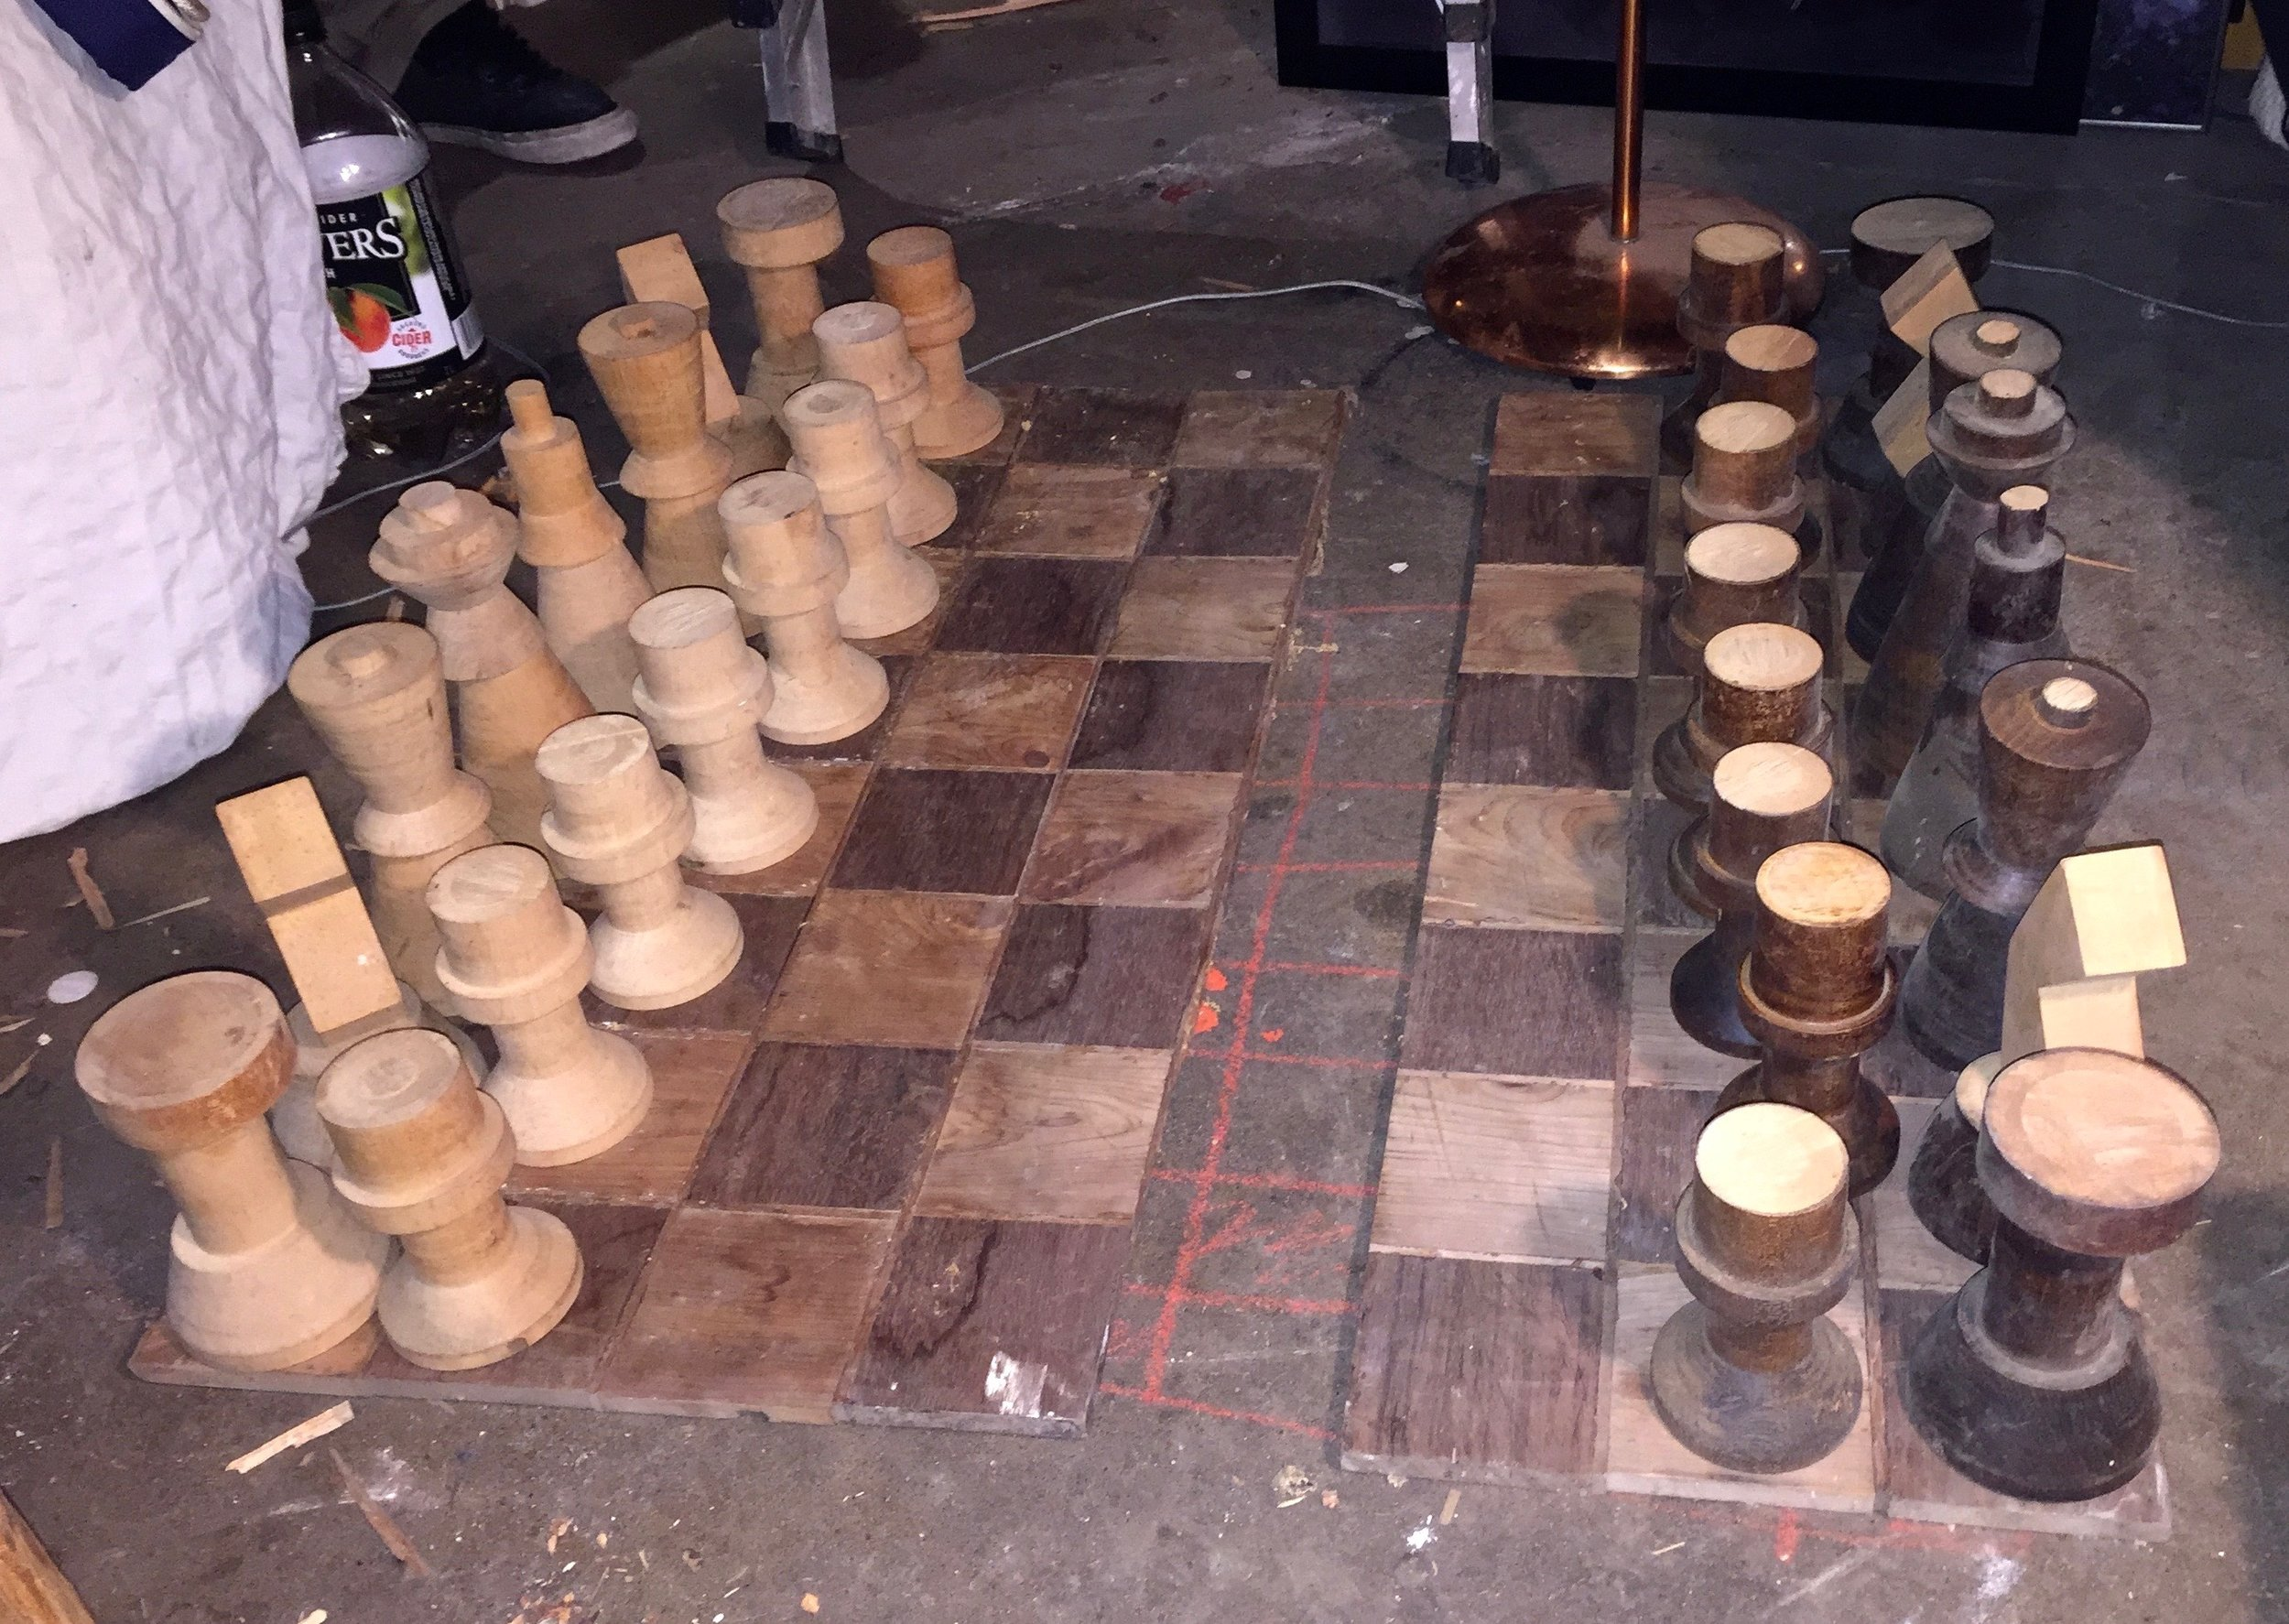 Another view of KJ's bowling pin chess set